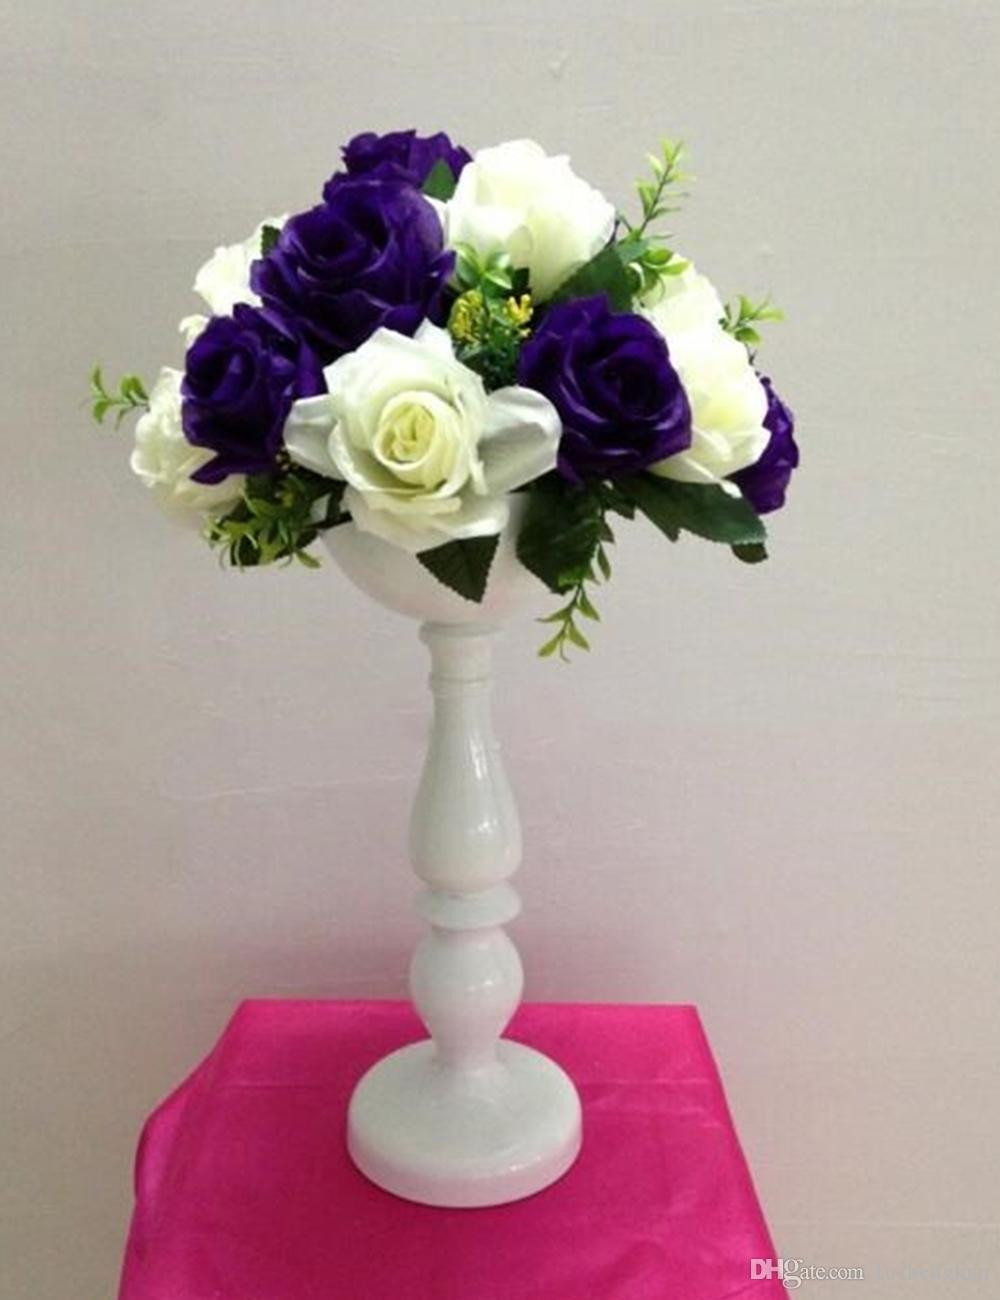 decorative flower vase online of new arrive 37 cm tall white metal flower vase wedding table in new arrive 37 cm tall white metal flower vase wedding table centerpiece event home decor hotel road lead flower vase road lead online with 237 99 piece